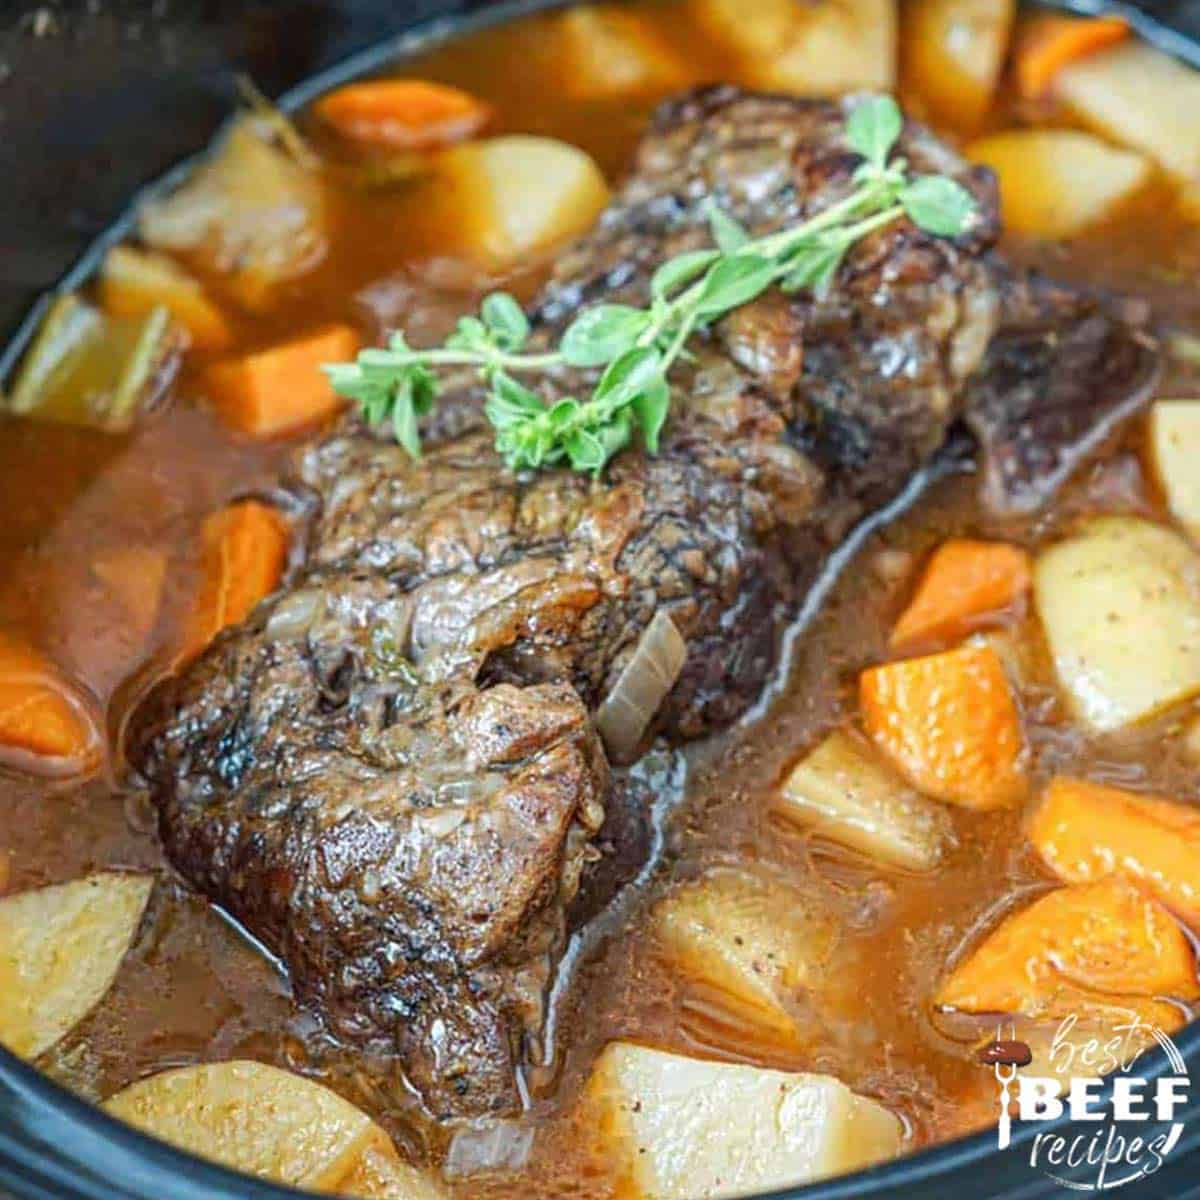 Slow cooker roast beef with potatoes and carrots in crockpot